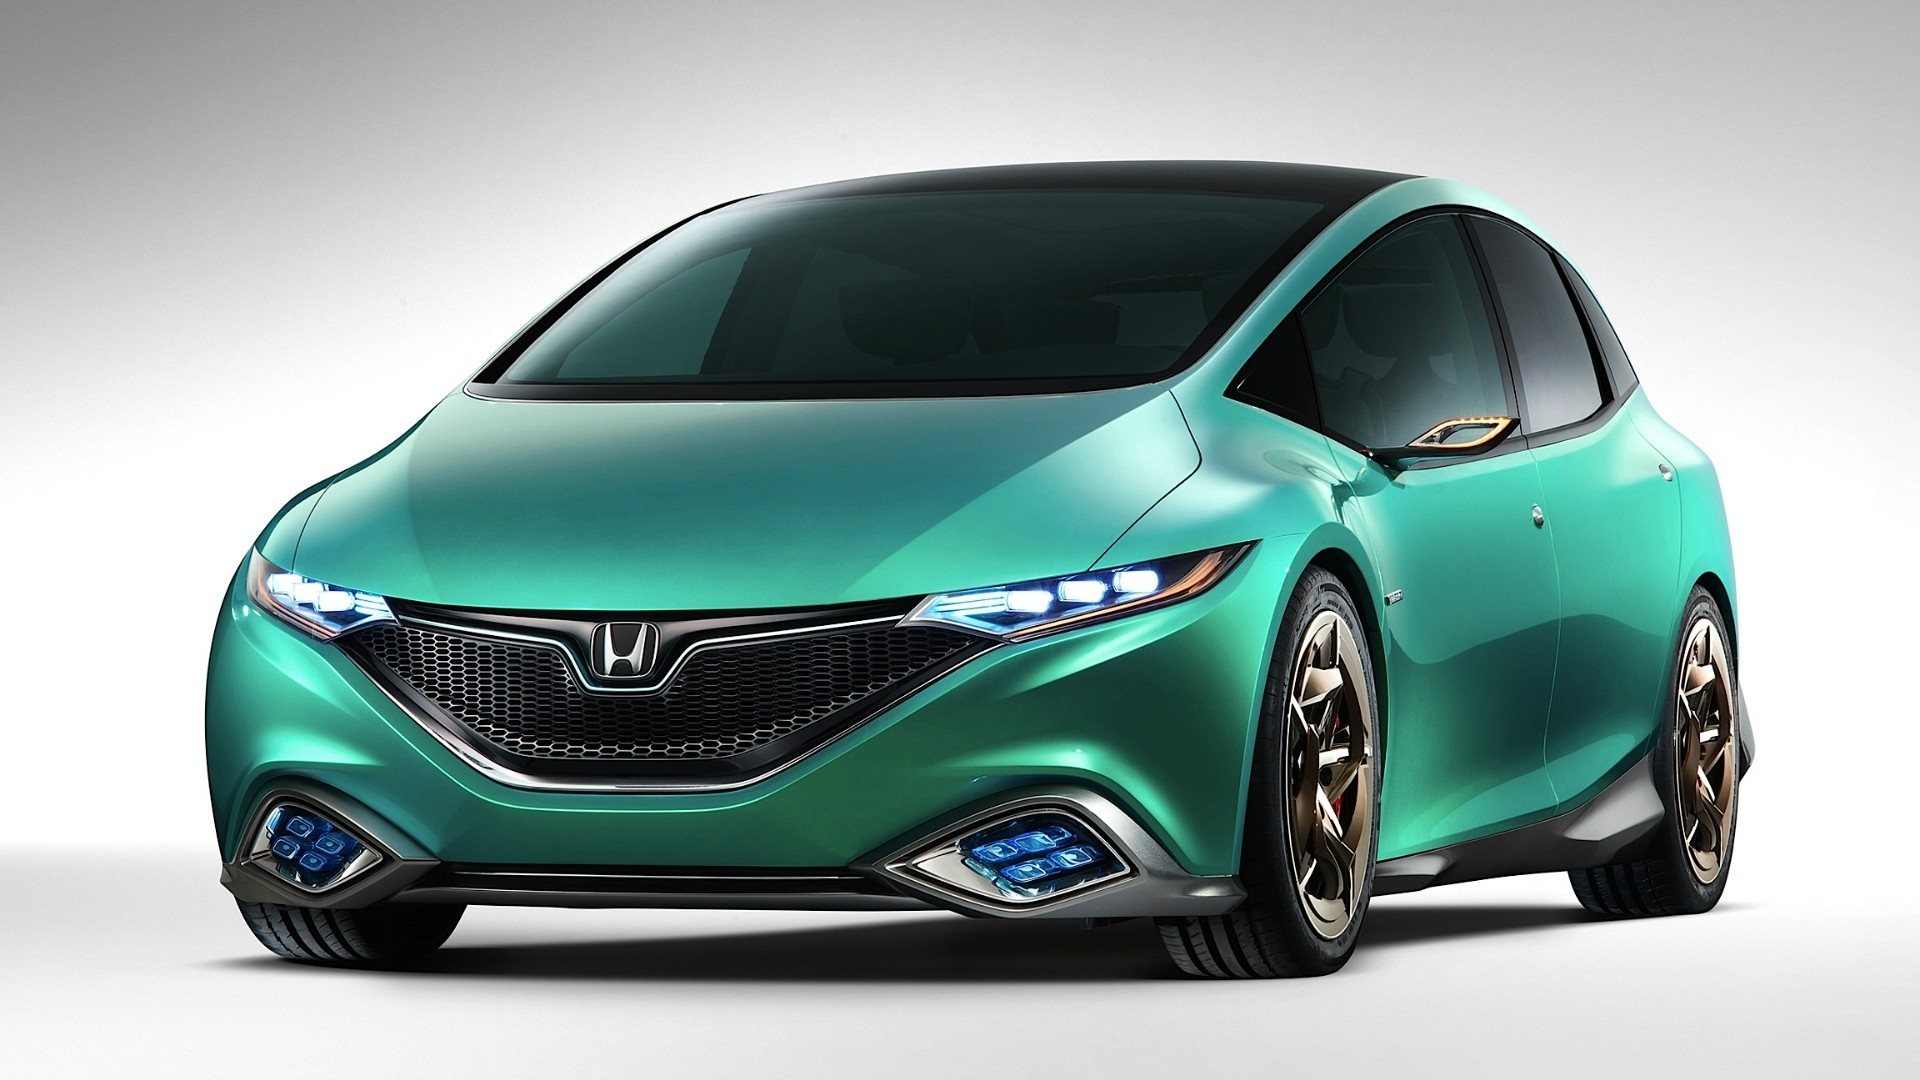 Honda Cars Concept Fresh New Hd Wallpaper Download